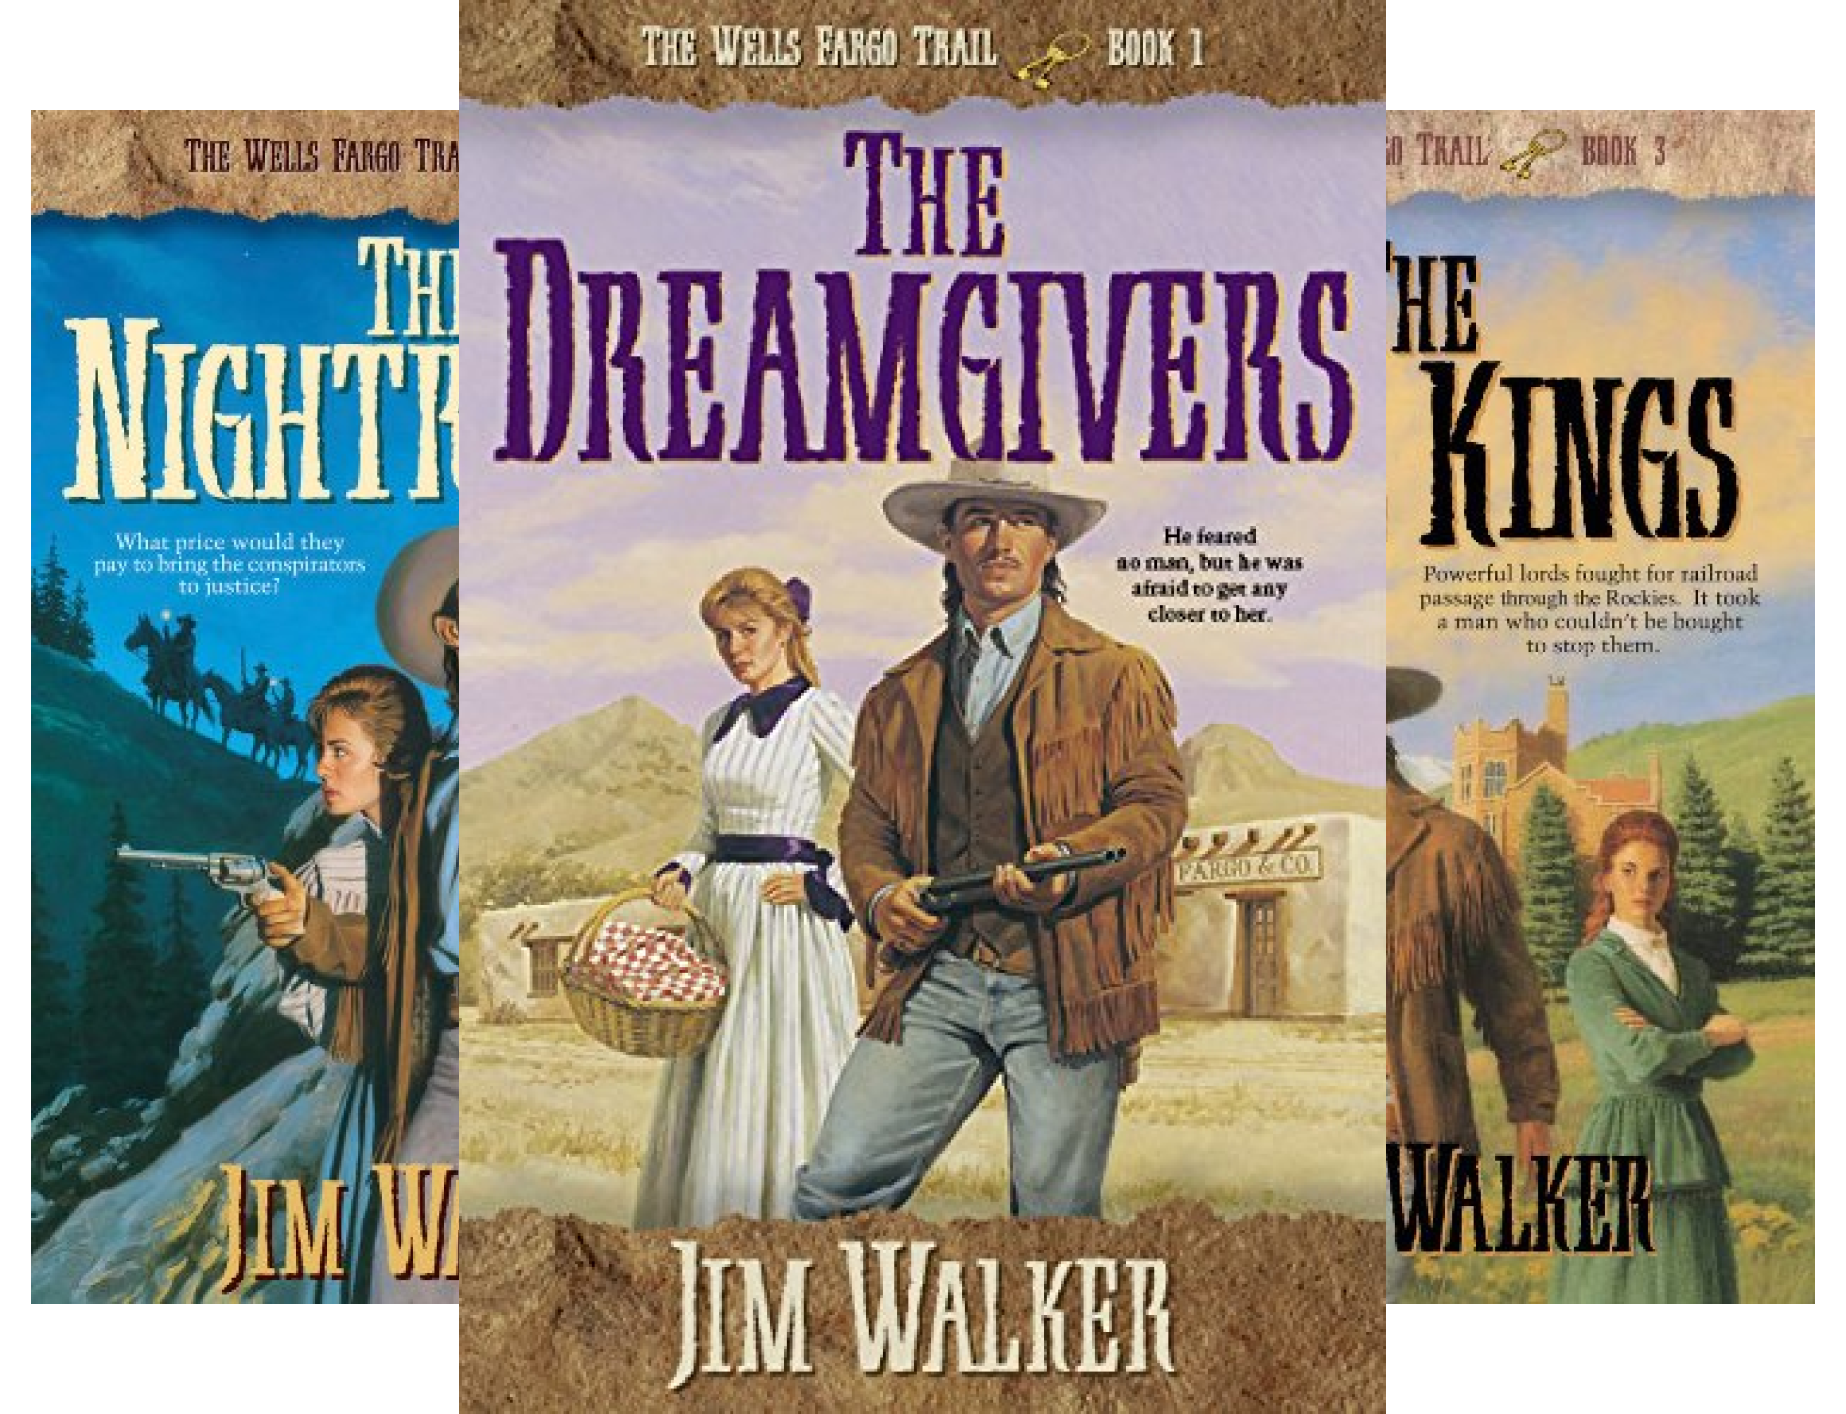 wells-fargo-trail-8-book-series